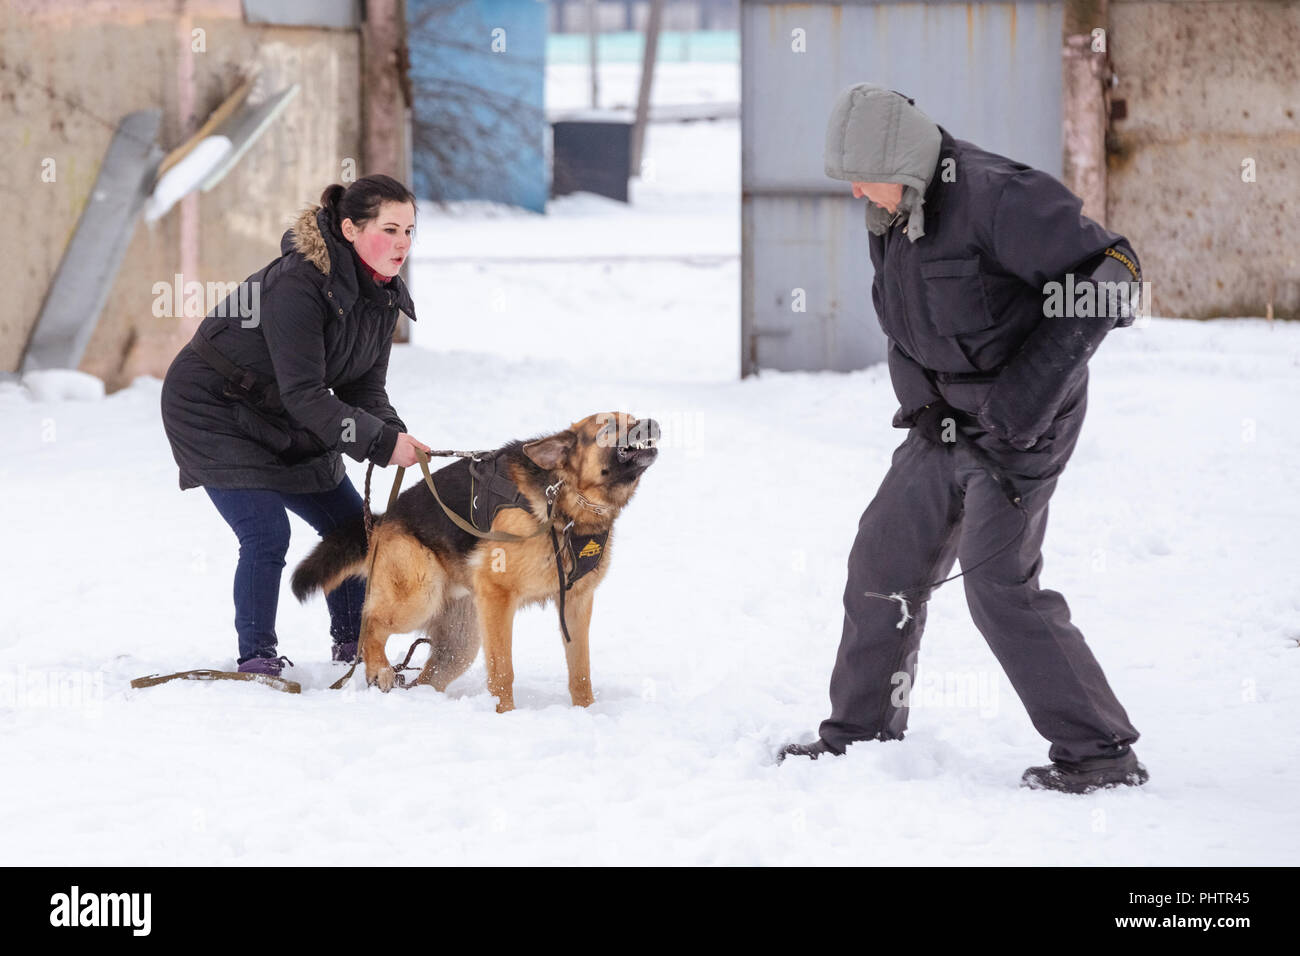 Gomel, Belarus - January 15, 2017: Occupation with a dog breed German Shepherd host protection from attack - Stock Image